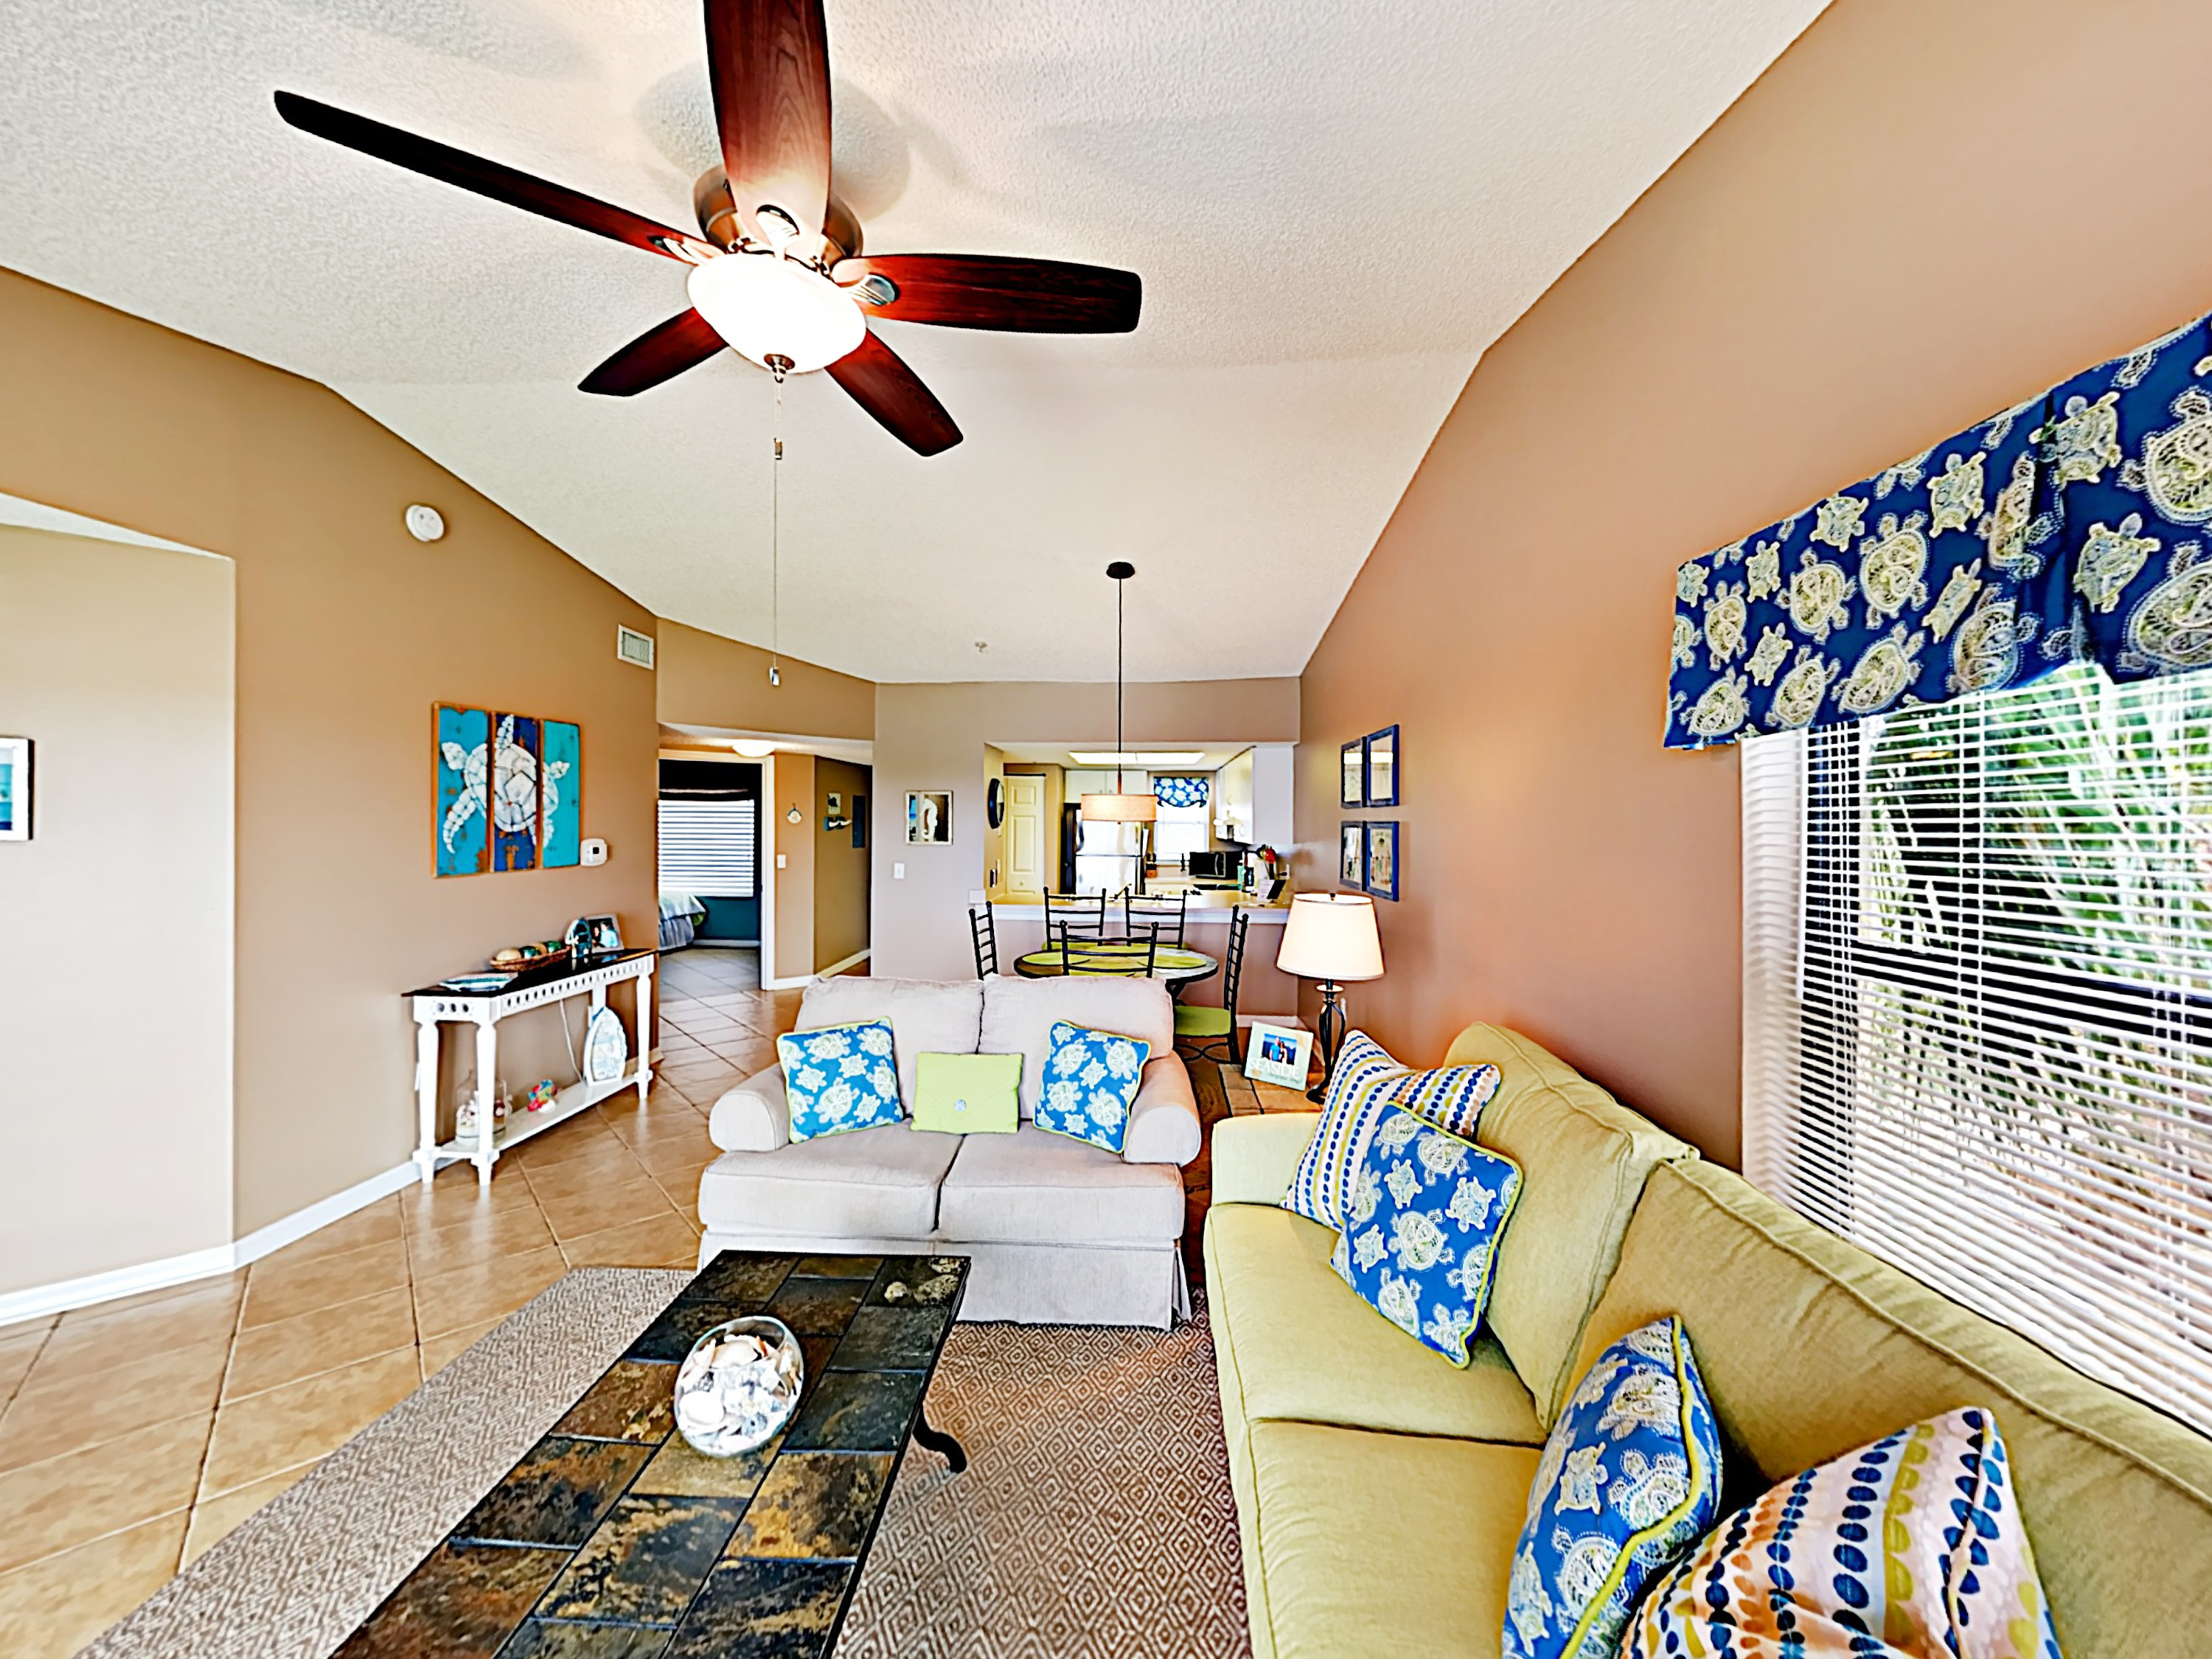 St. Augustine FL Vacation Rental Welcome to St.